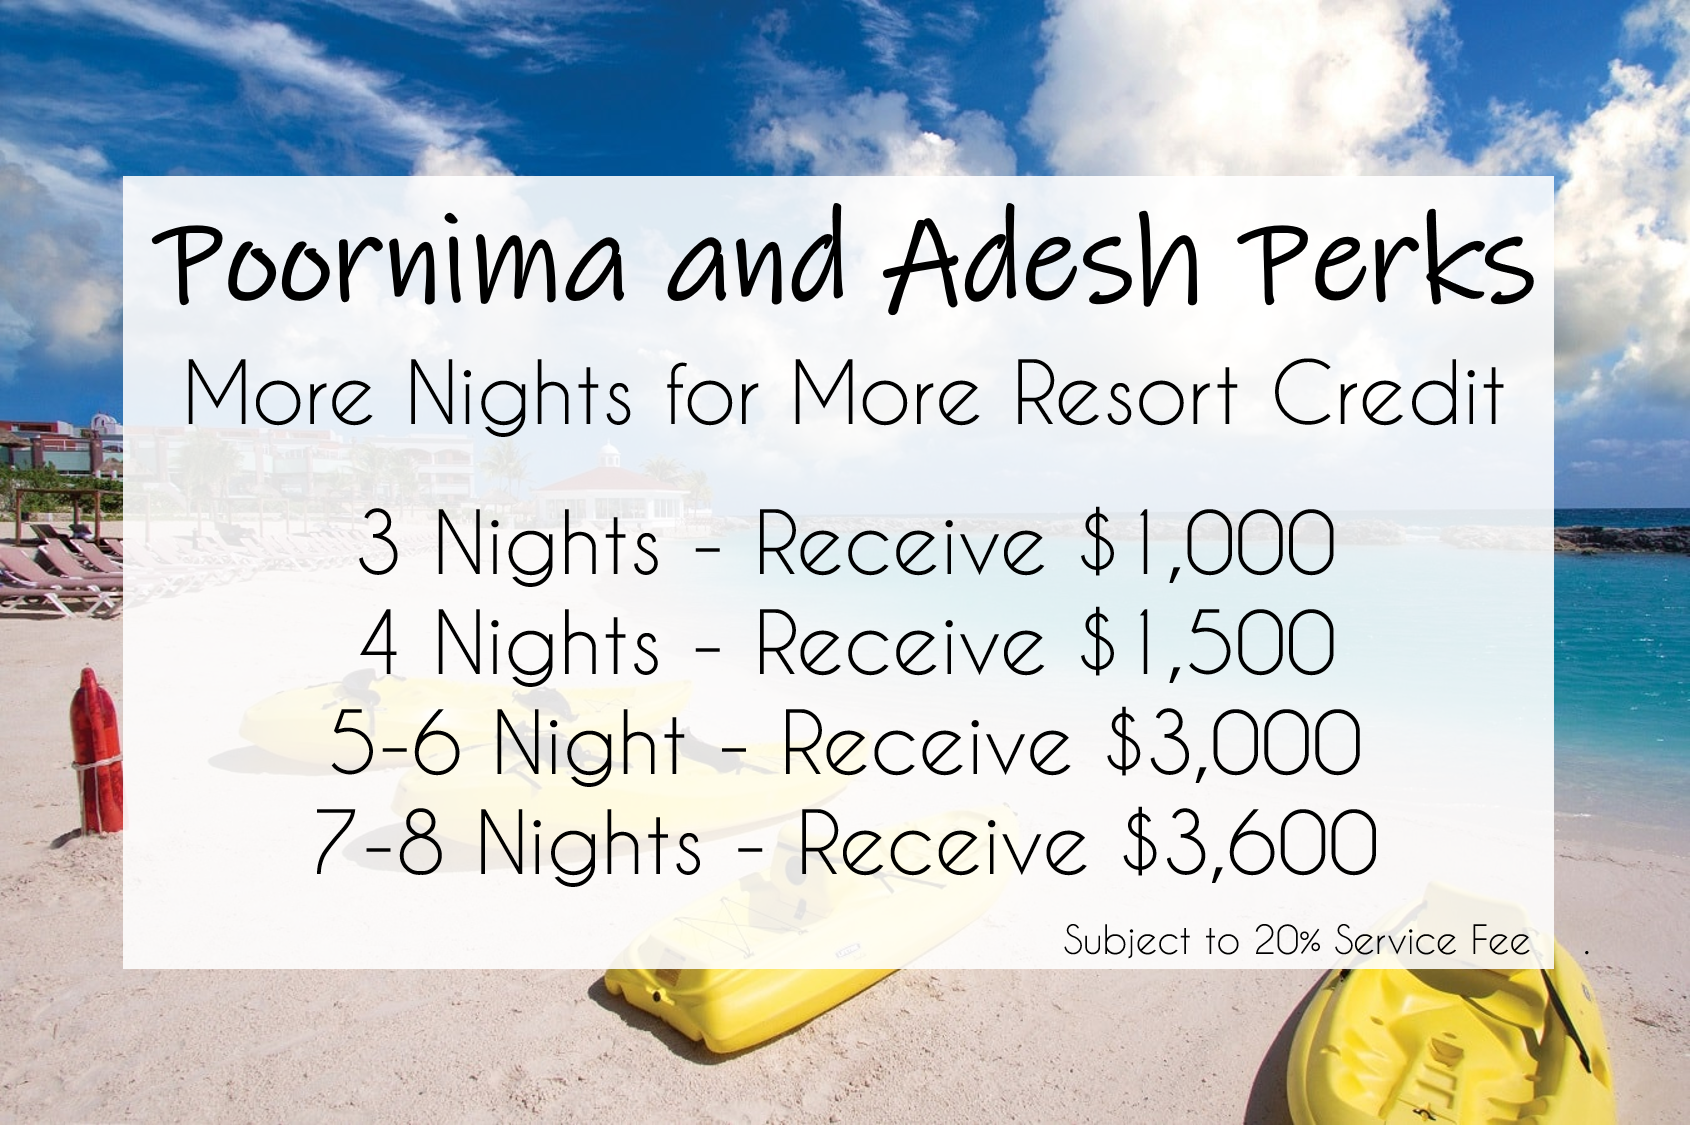 Poornima and Adesh - Perks.png